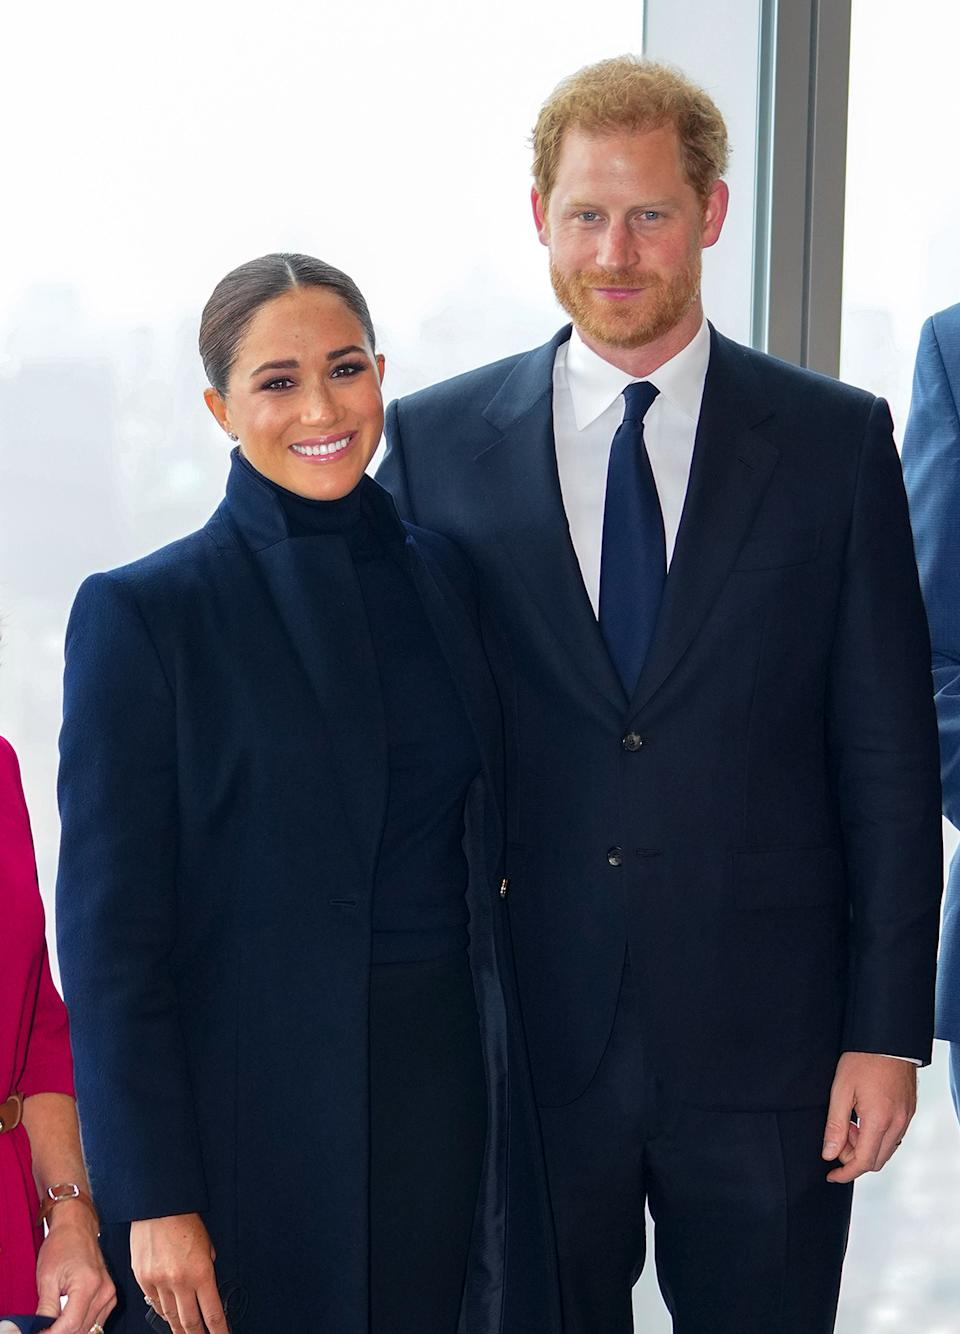 Prince Harry and Meghan Markle at One World Trade Center Observatory in New York,